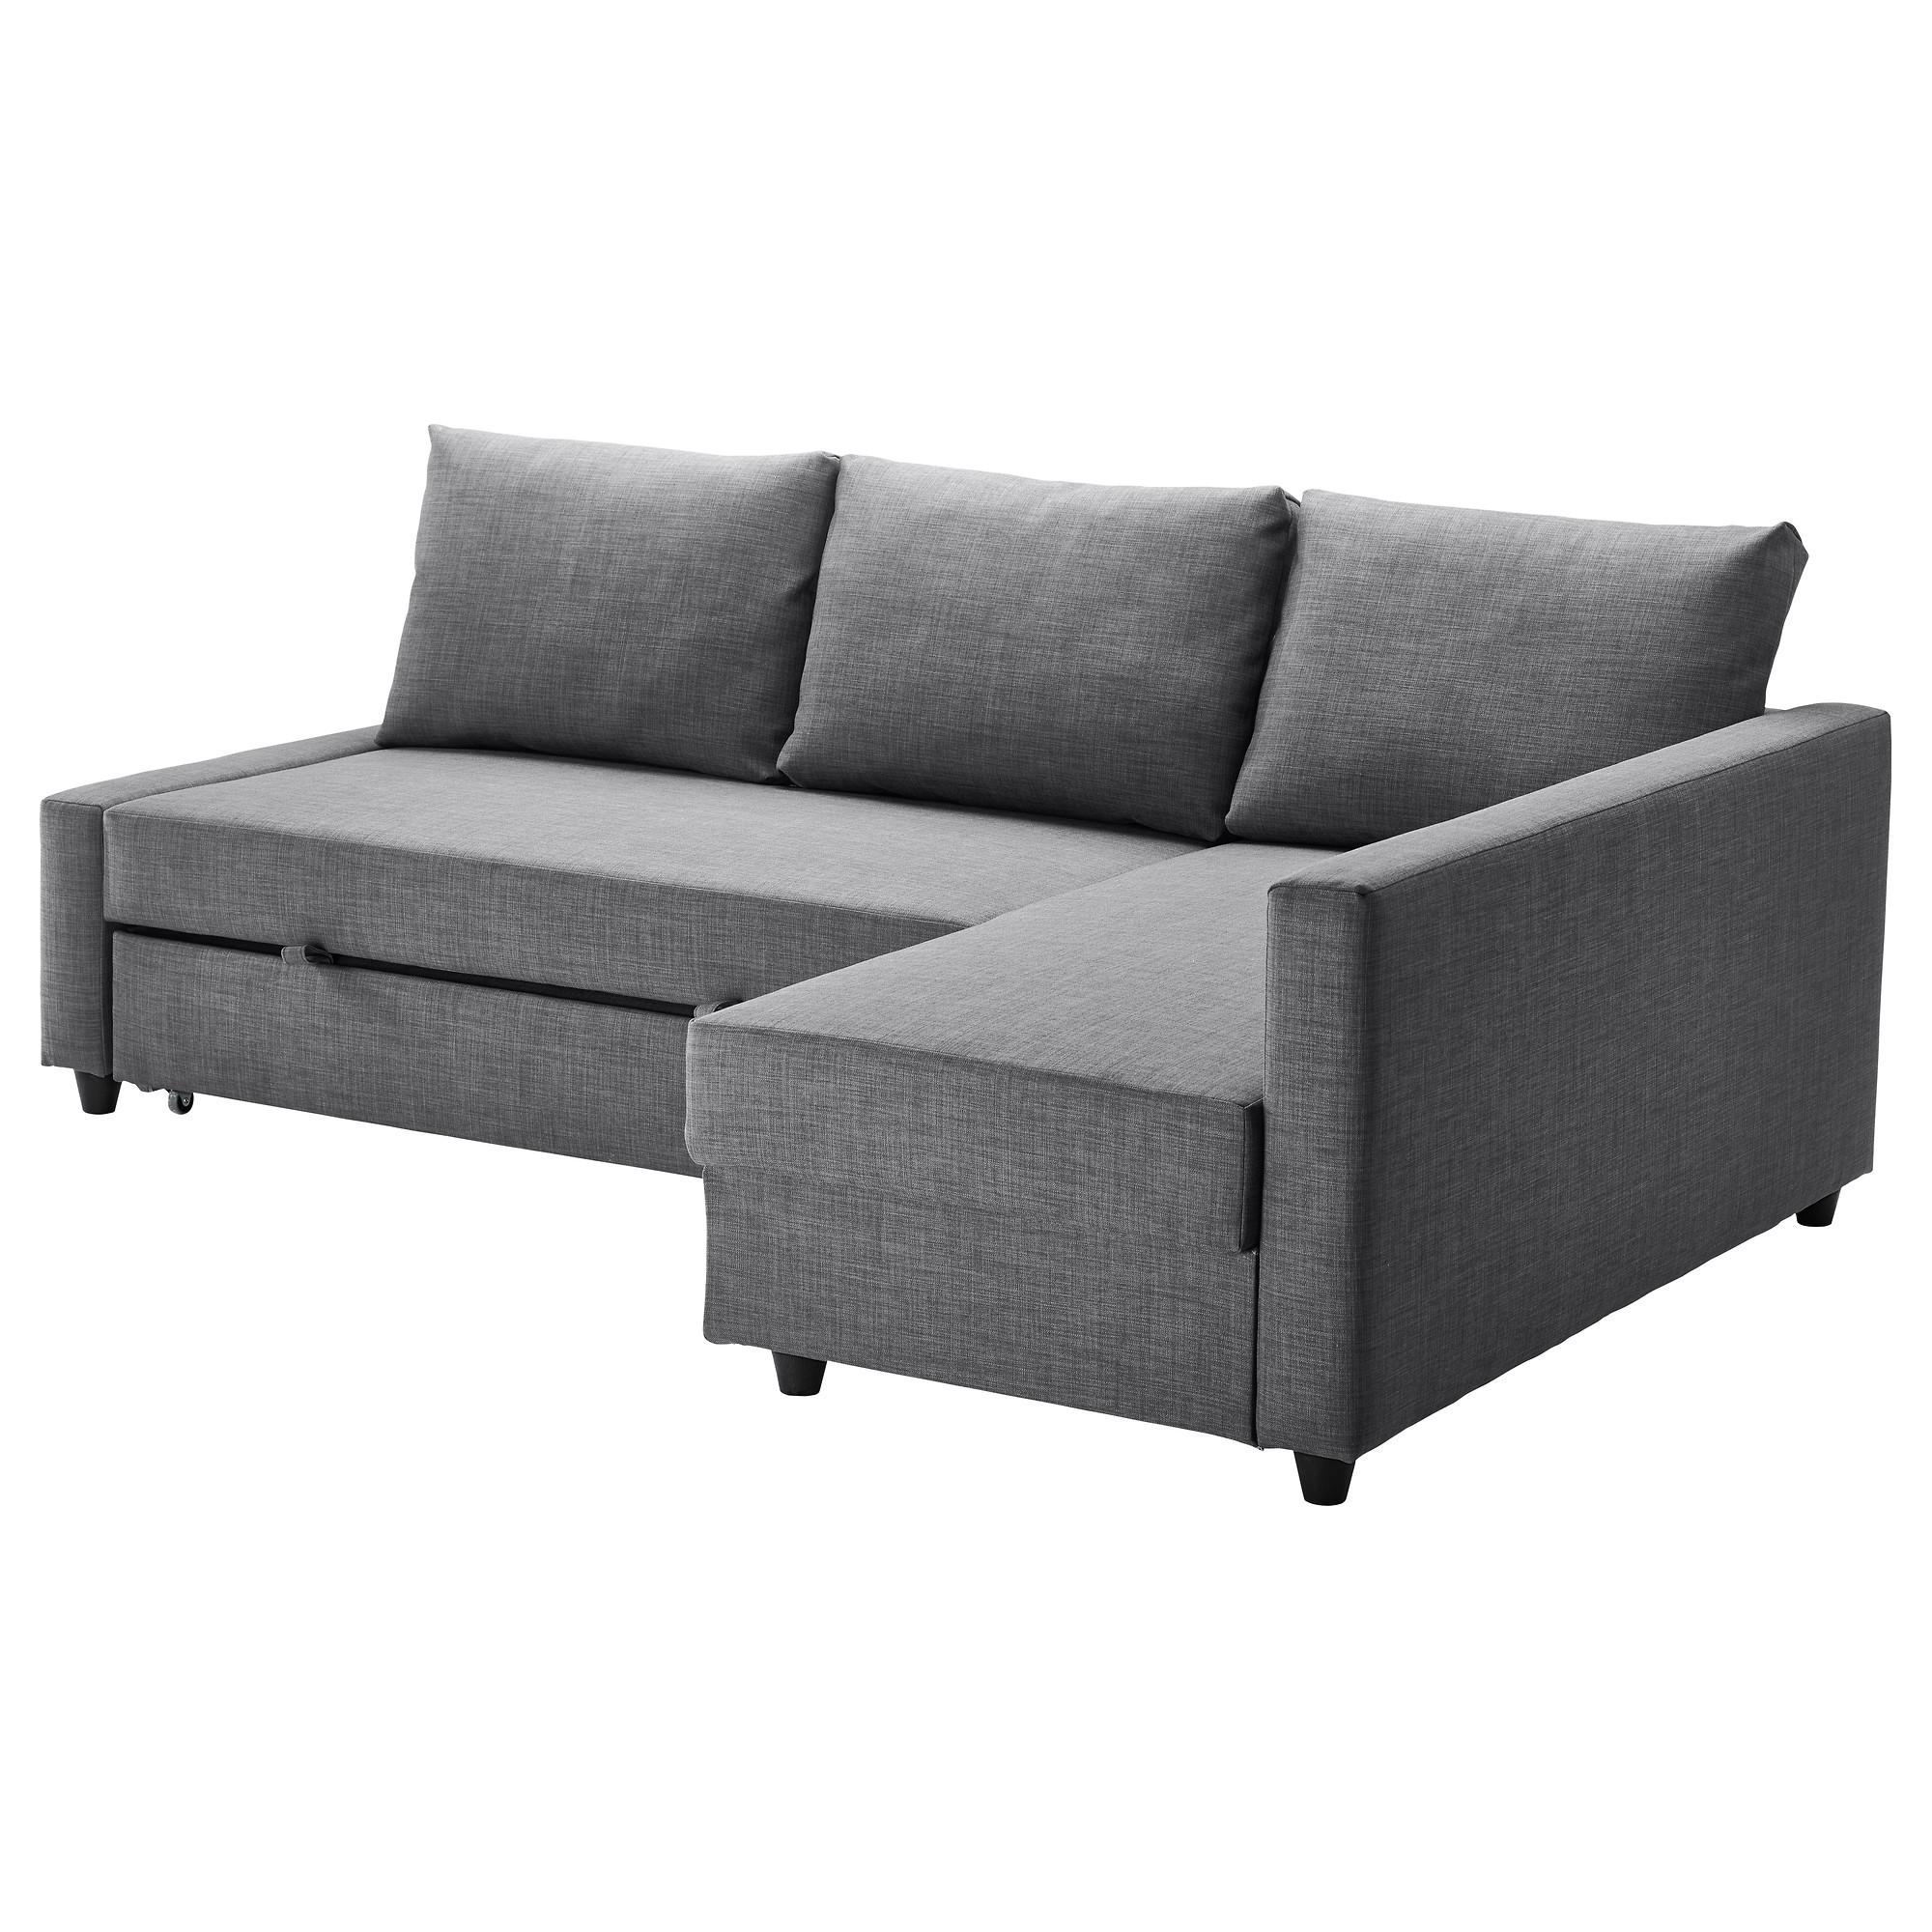 friheten corner sofa bed with storage skiftebo dark grey ikea rh ikea com grey sofa beds ebay grey sofa beds ebay